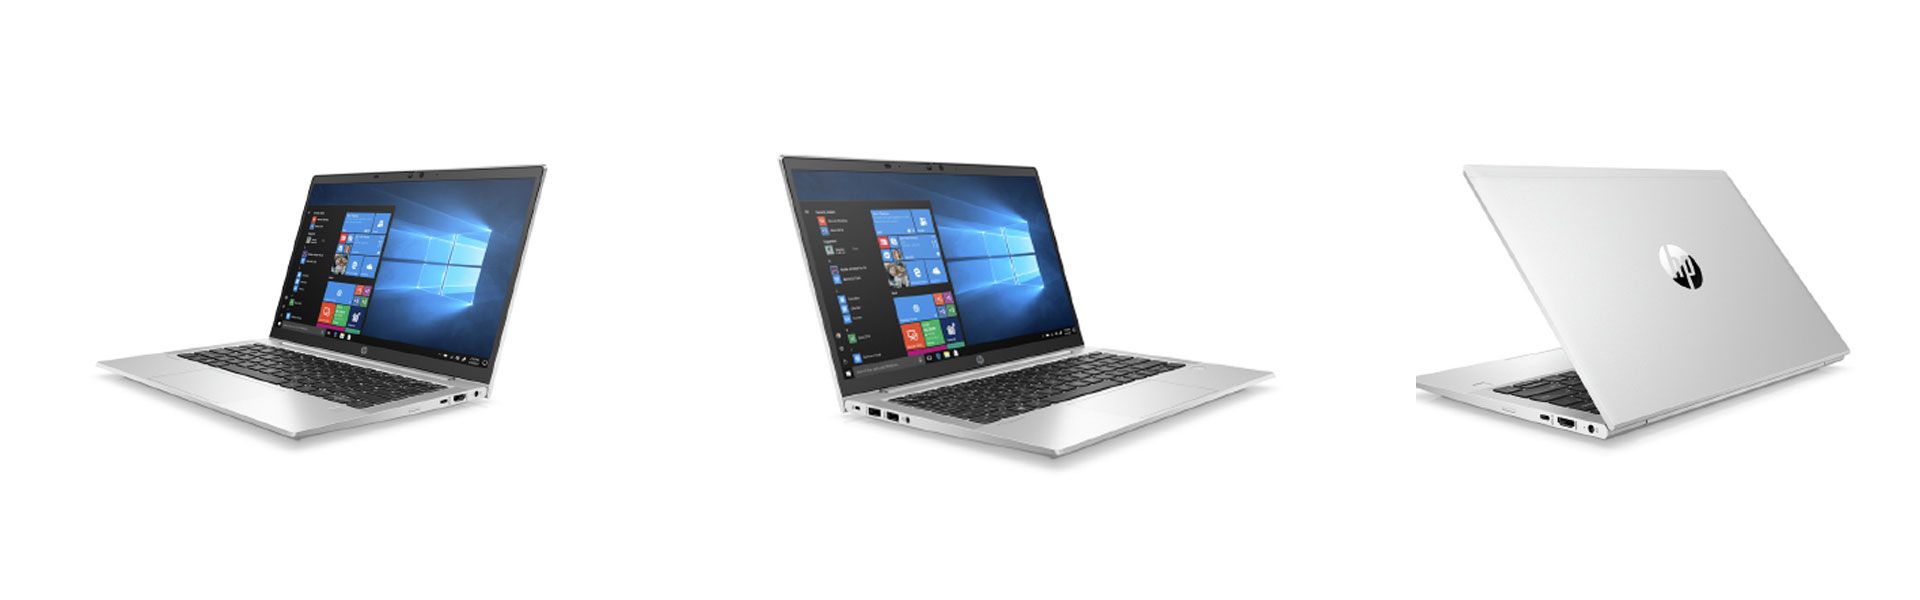 ProBook Laptops open